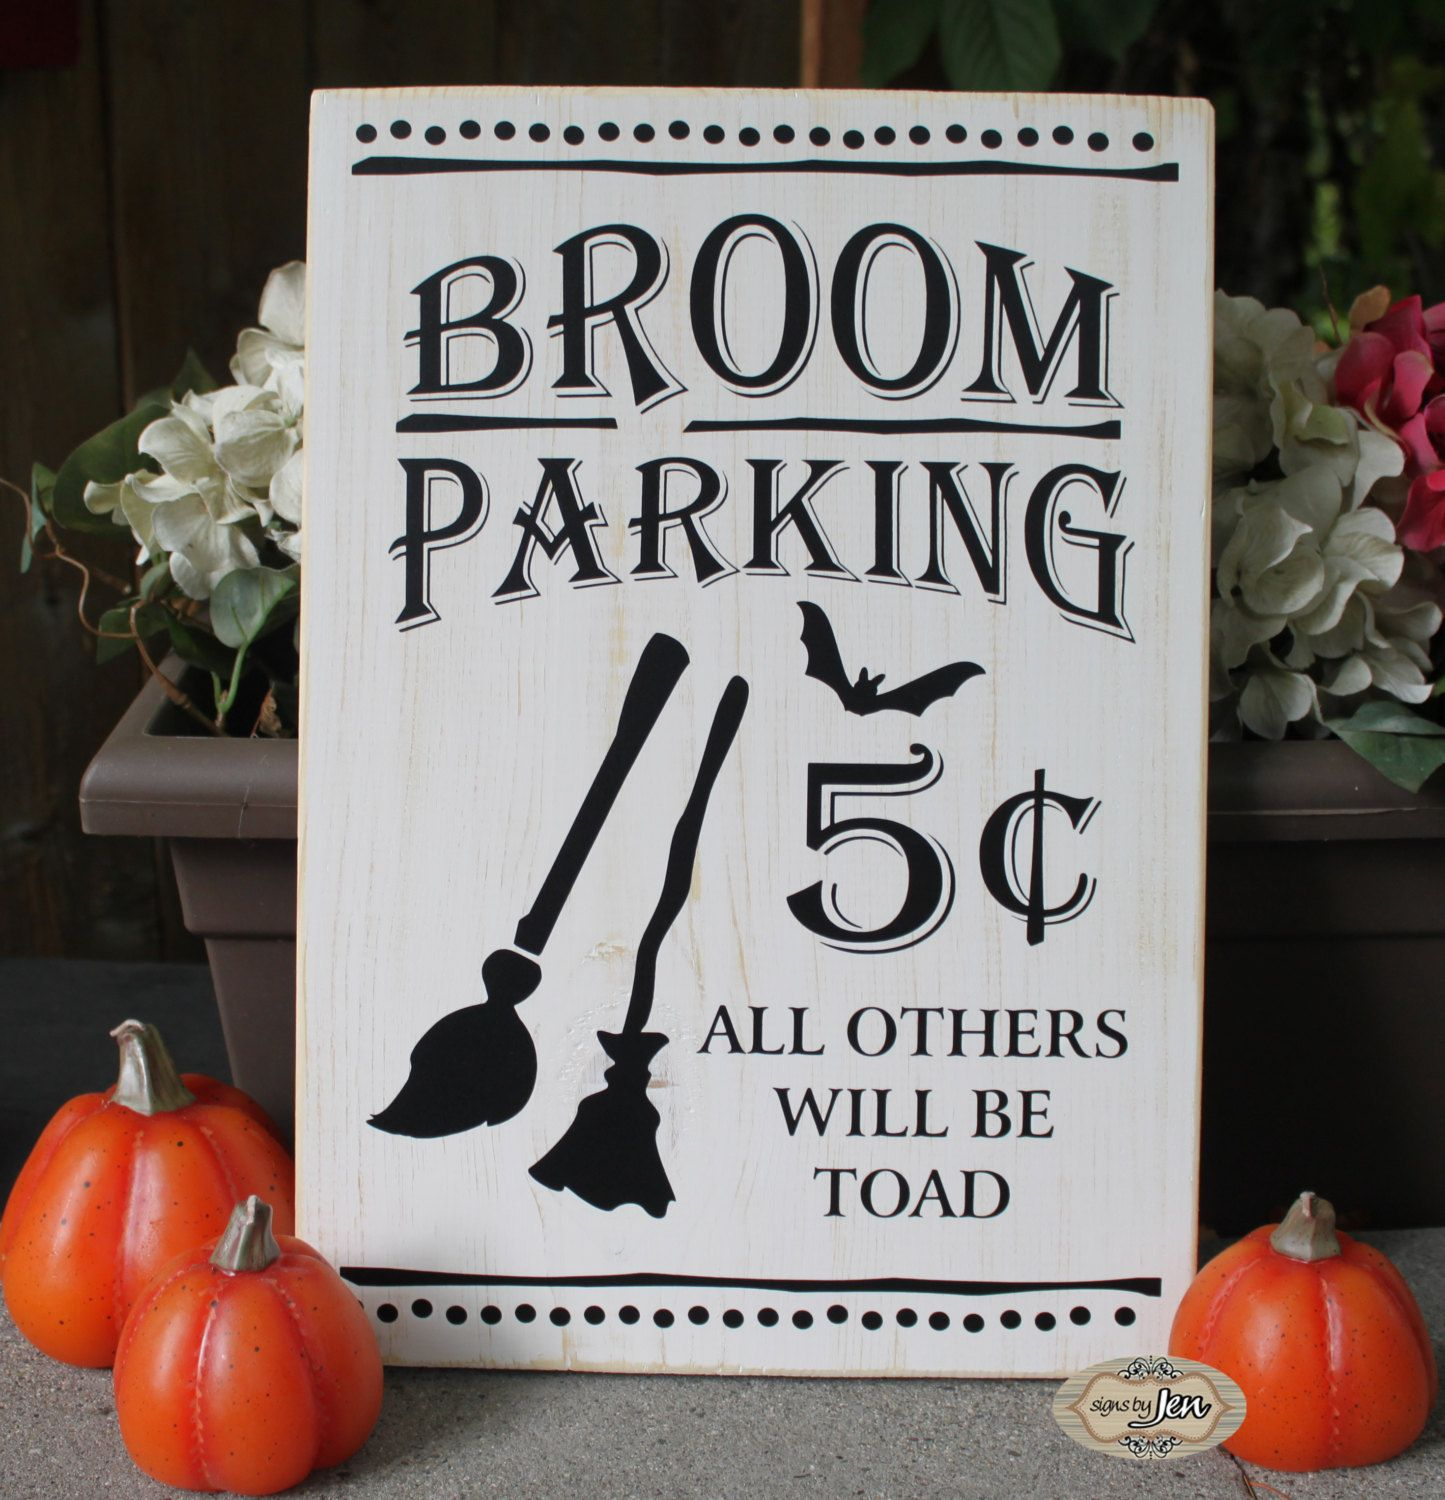 Broom Parking all others will be toad, Halloween Sign in